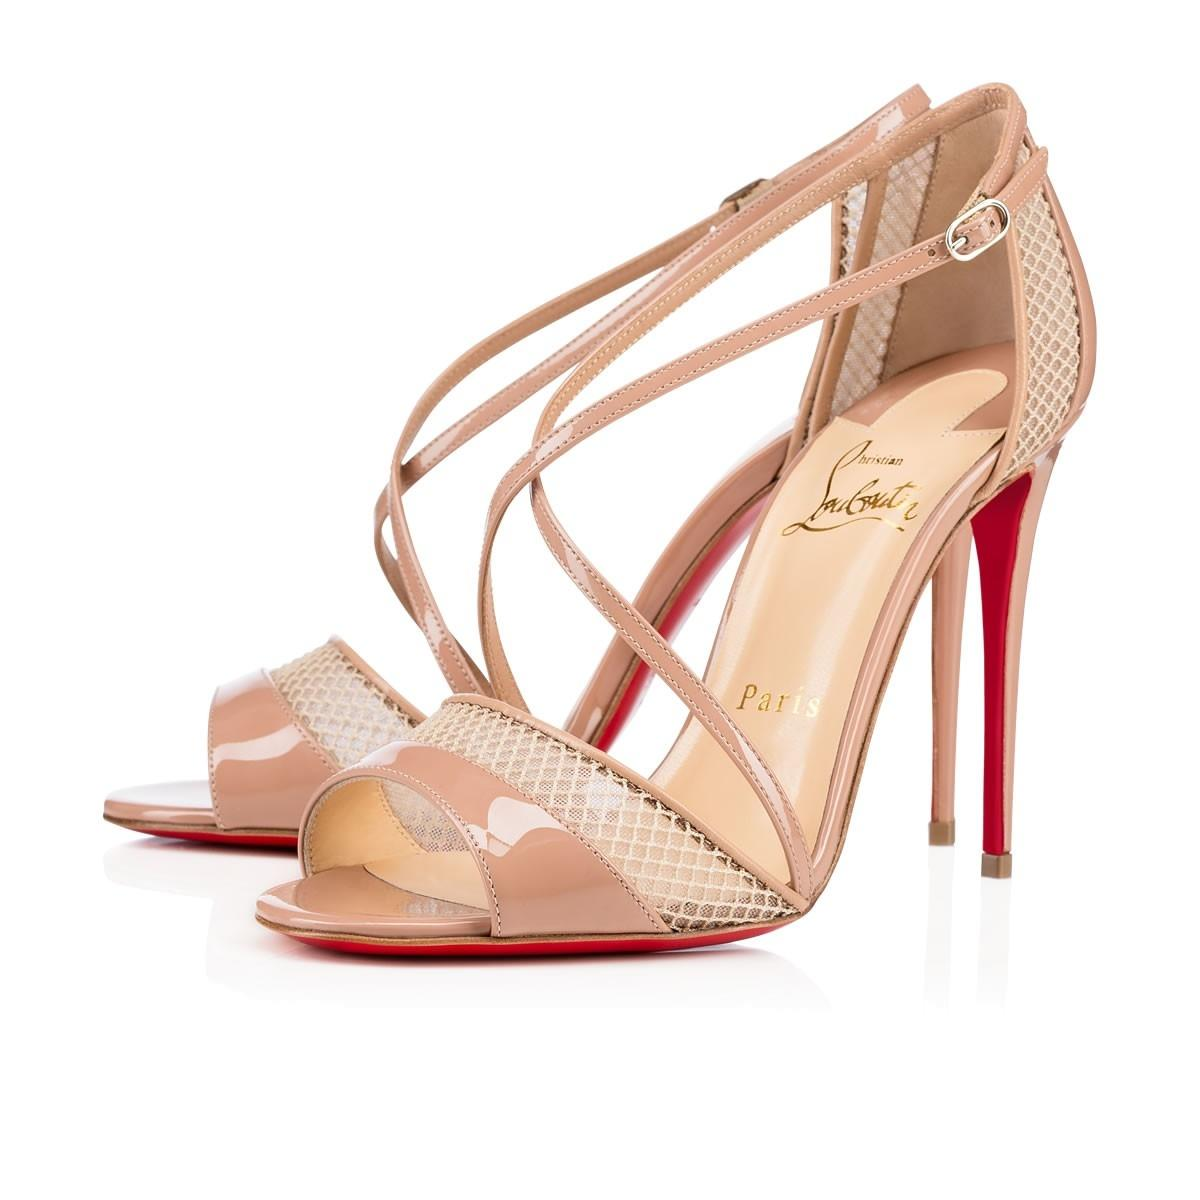 Christian Louboutin Nude Slikova Pumps Size US 7.5 Regular (M, B)